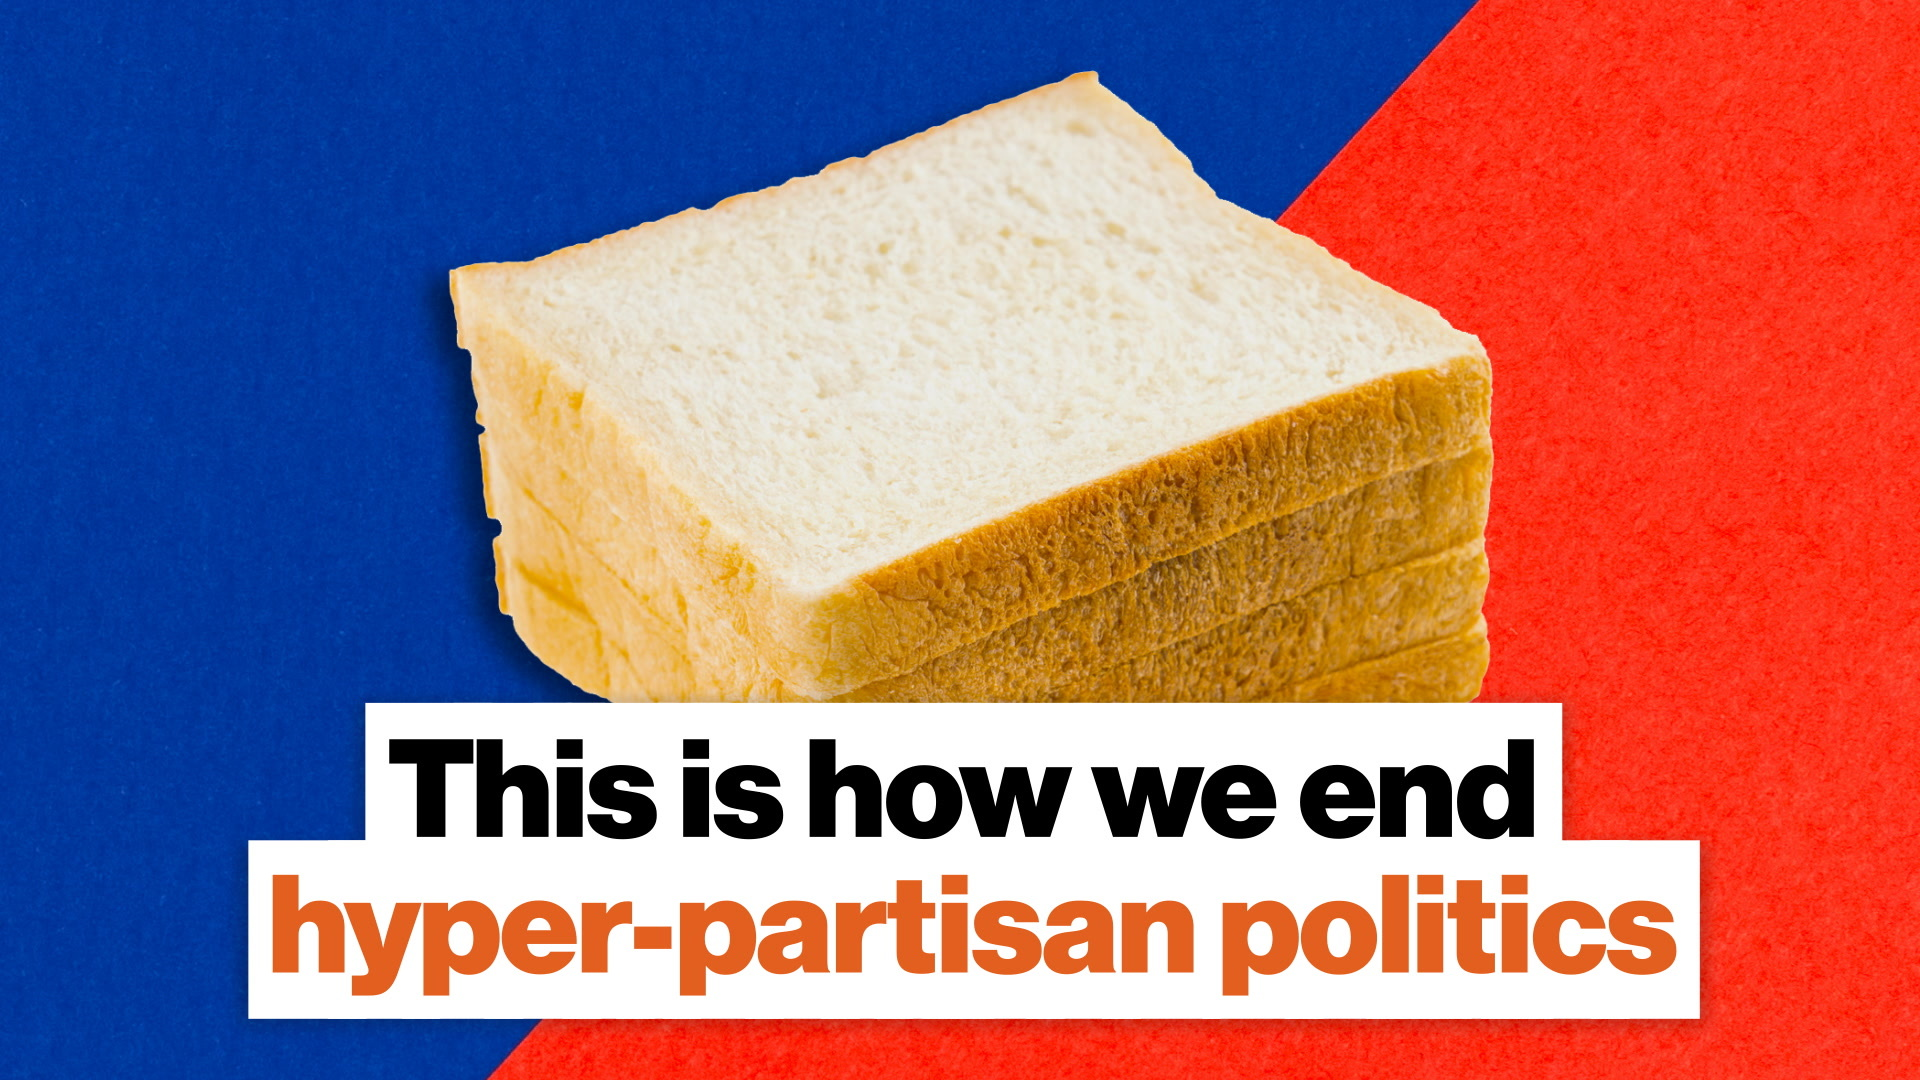 This is how we end hyper-partisan politics